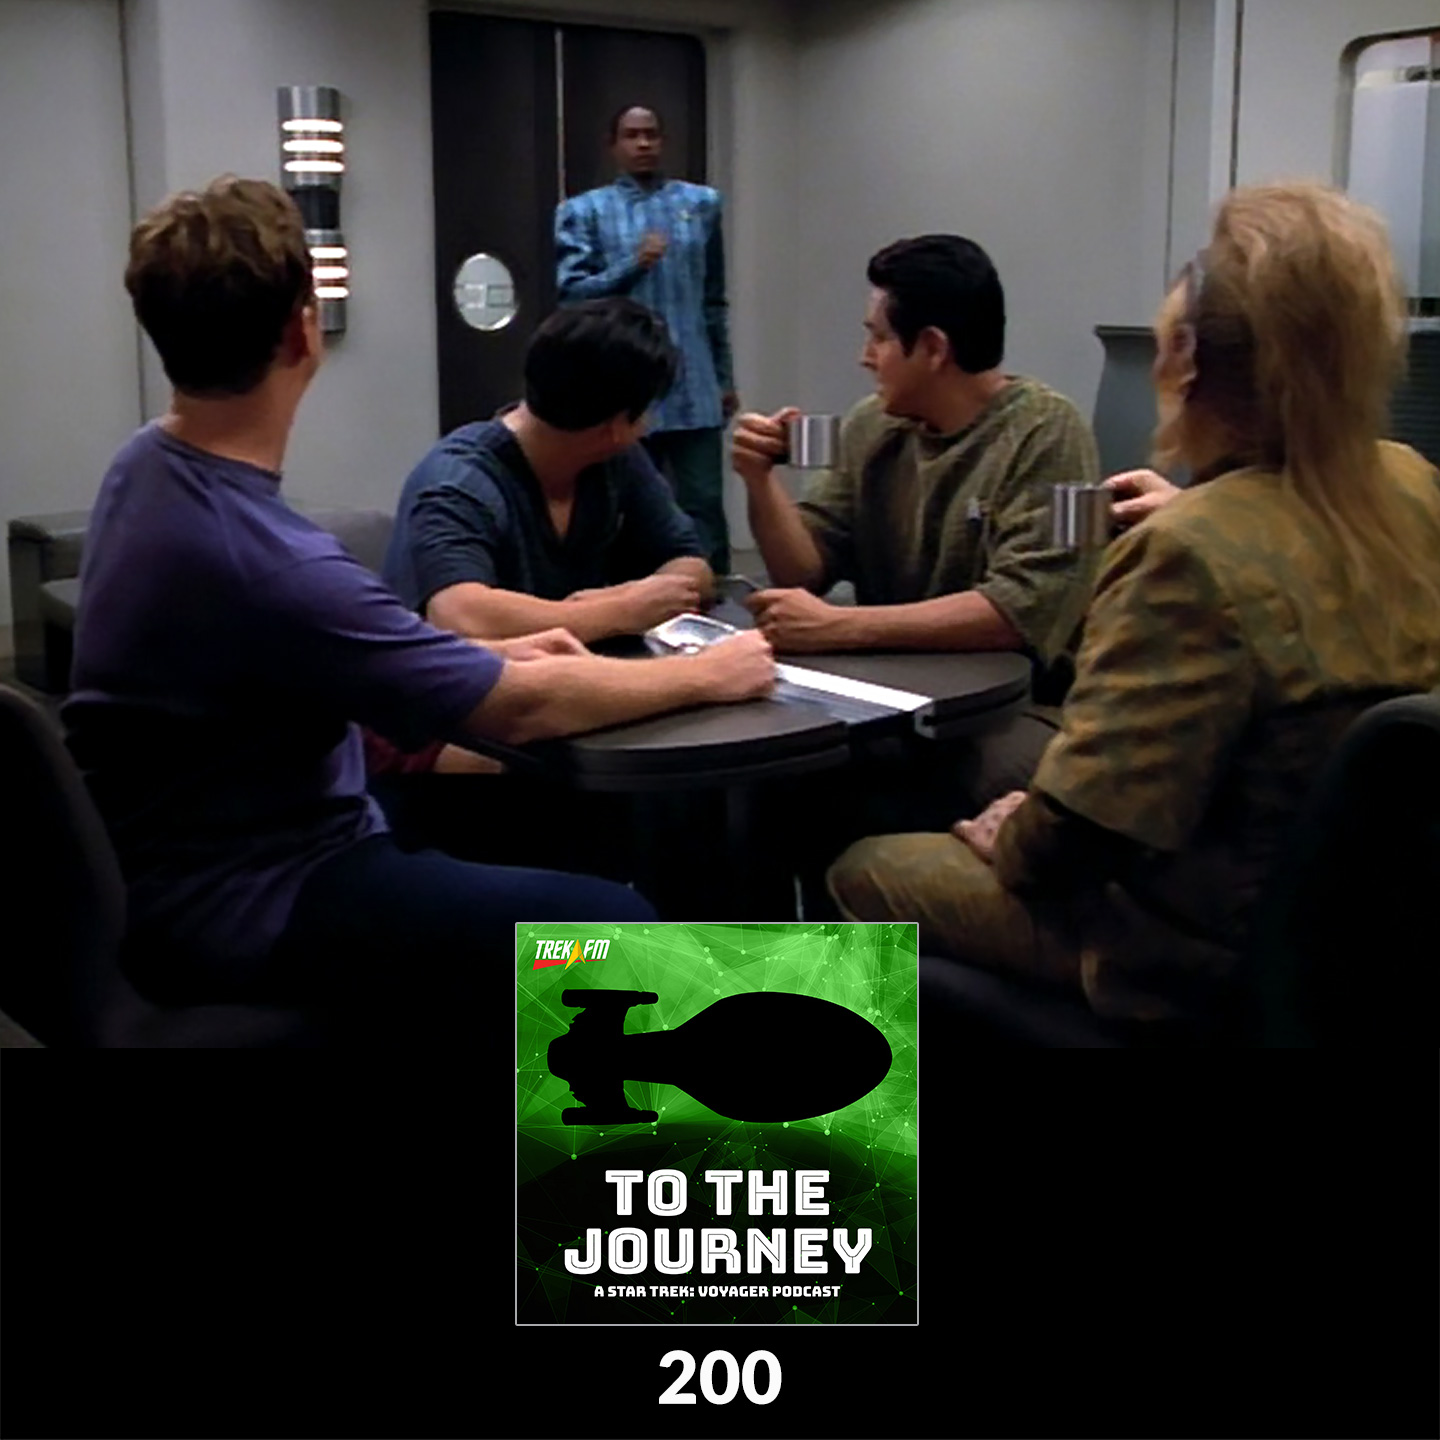 """To The Journey 200: Pon Farr Night at the Playboy Mansion - """"Caretaker"""" and Celebrating 200 Episodes."""